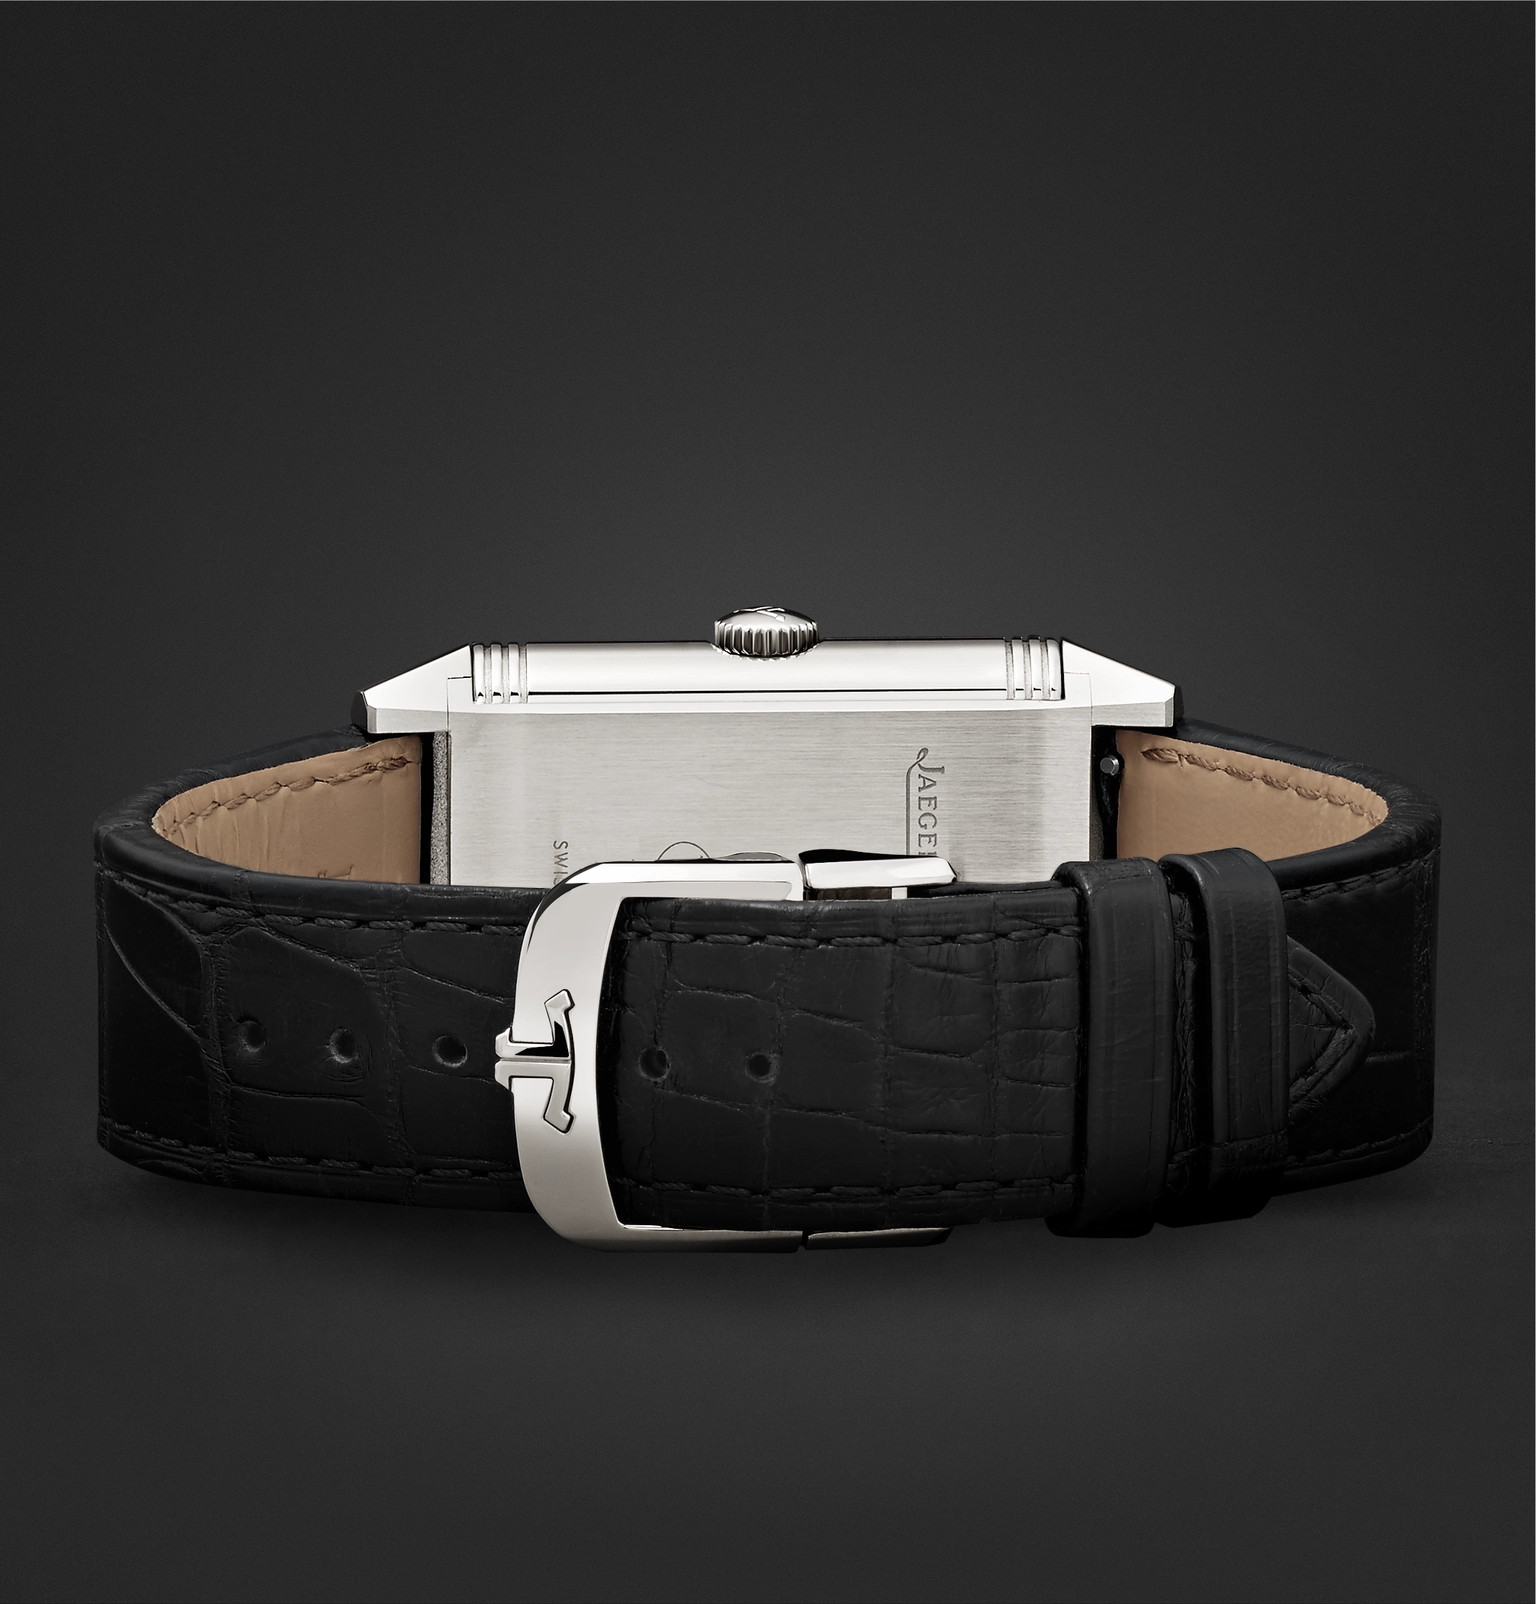 09640098814 Jaeger-LeCoultreReverso Classic Large Duoface 28mm Stainless Steel and  Leather Watch. £7